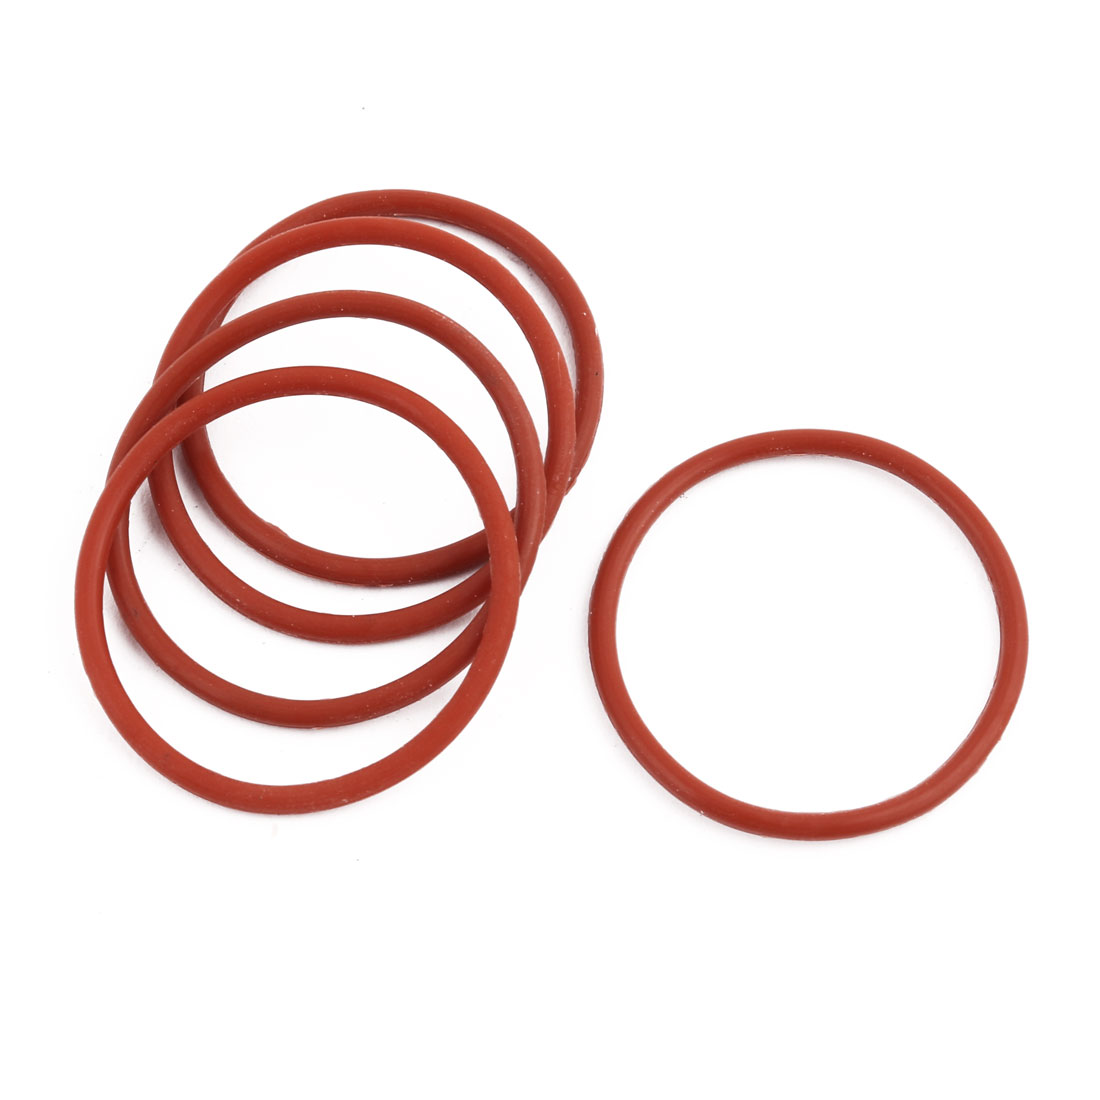 5pcs Red Round Nitrile Butadiene Rubber NBR O-Ring 31mm OD 1.9mm Width